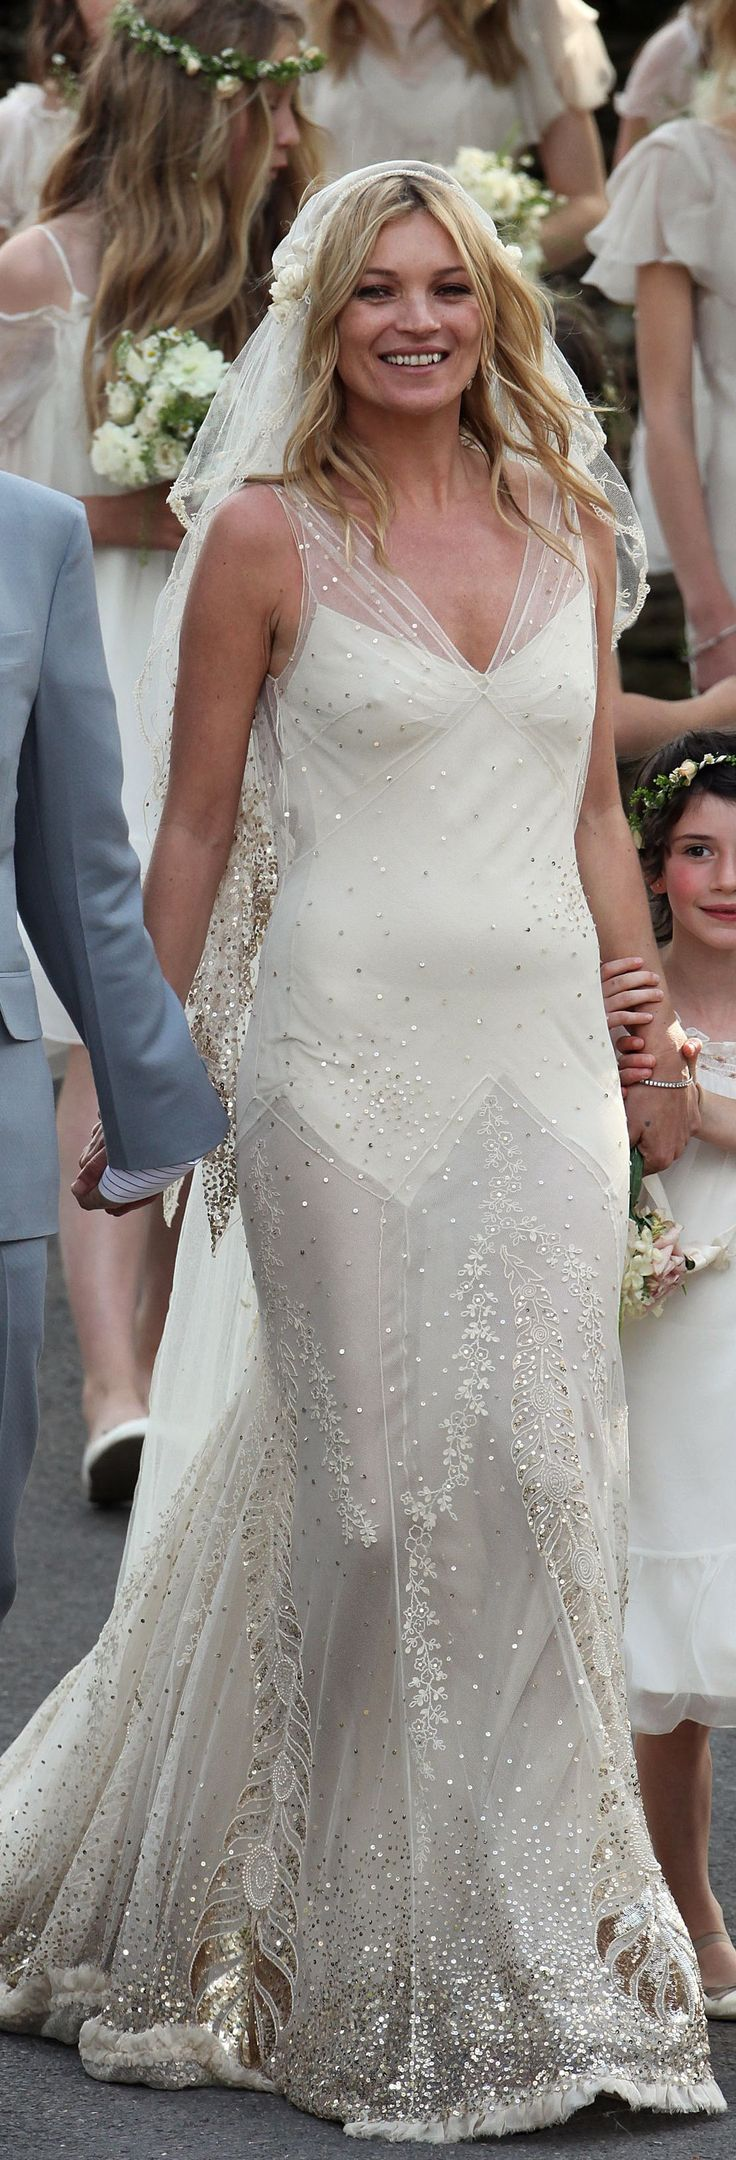 Kate Moss's wedding dress by John Galliano is unbelievable. I cannot imagine what it must have looked like in person.